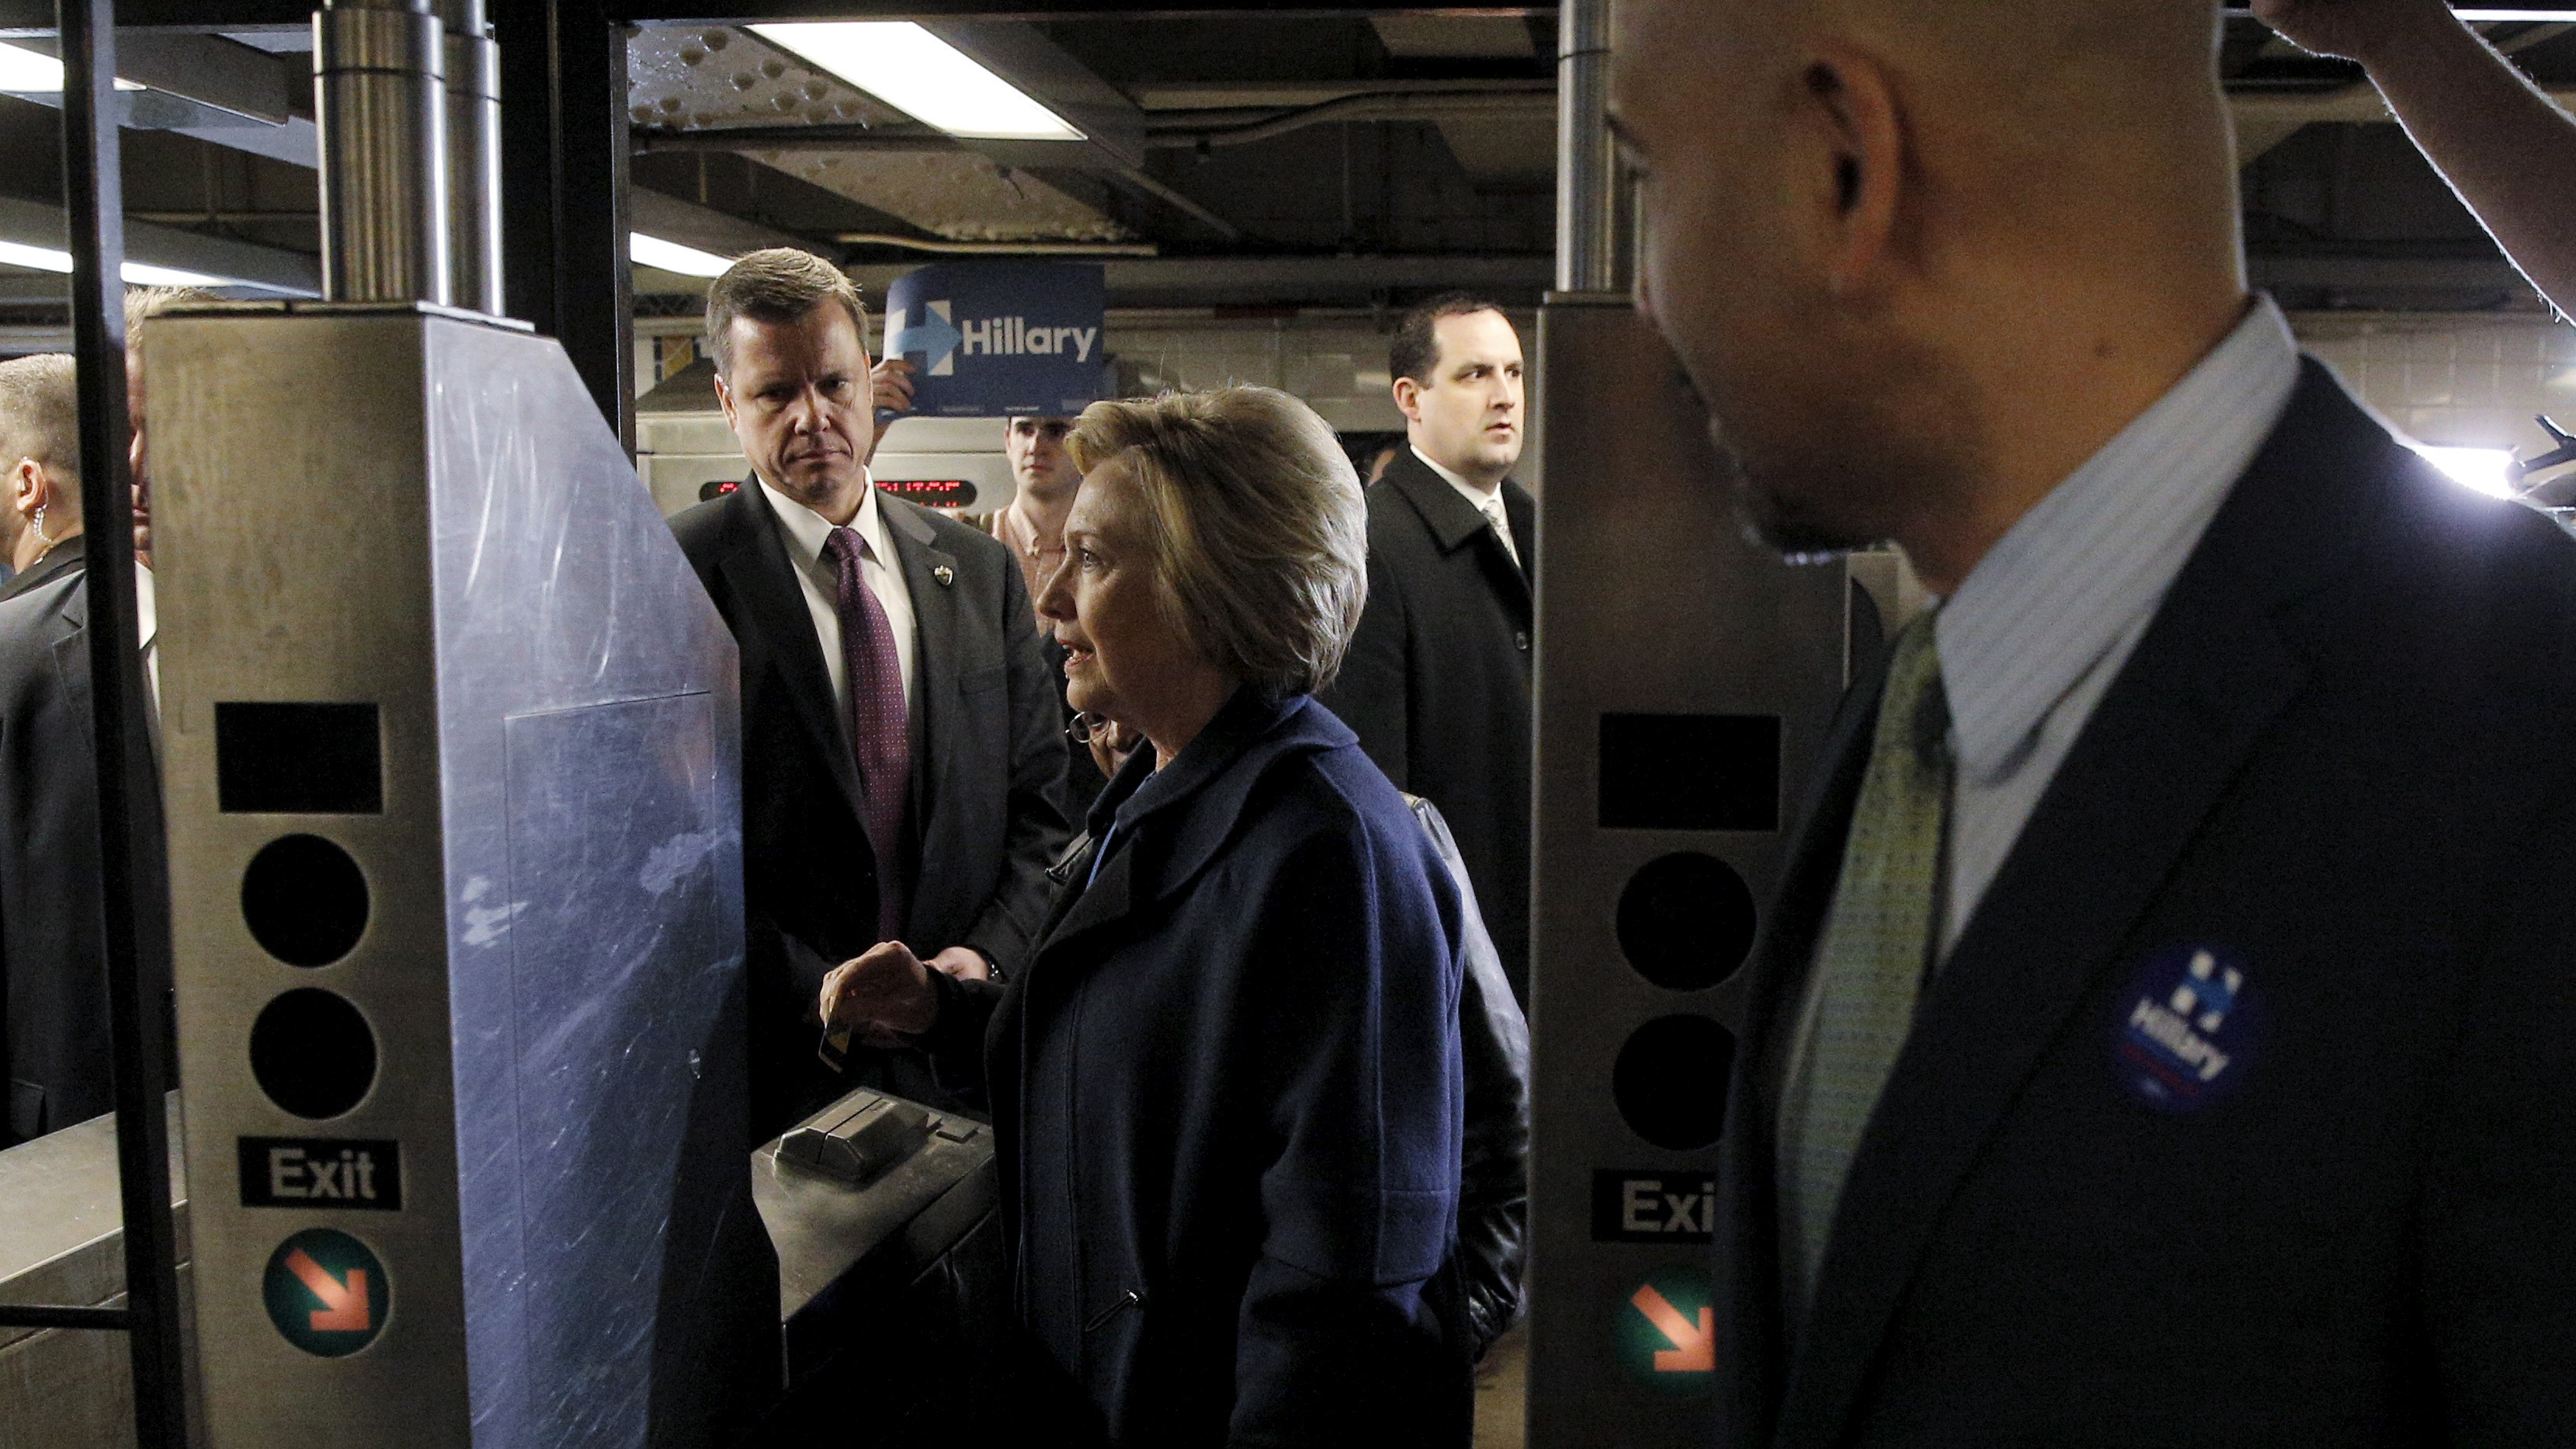 U.S. Democratic presidential candidate Hillary Clinton enters the subway in New York